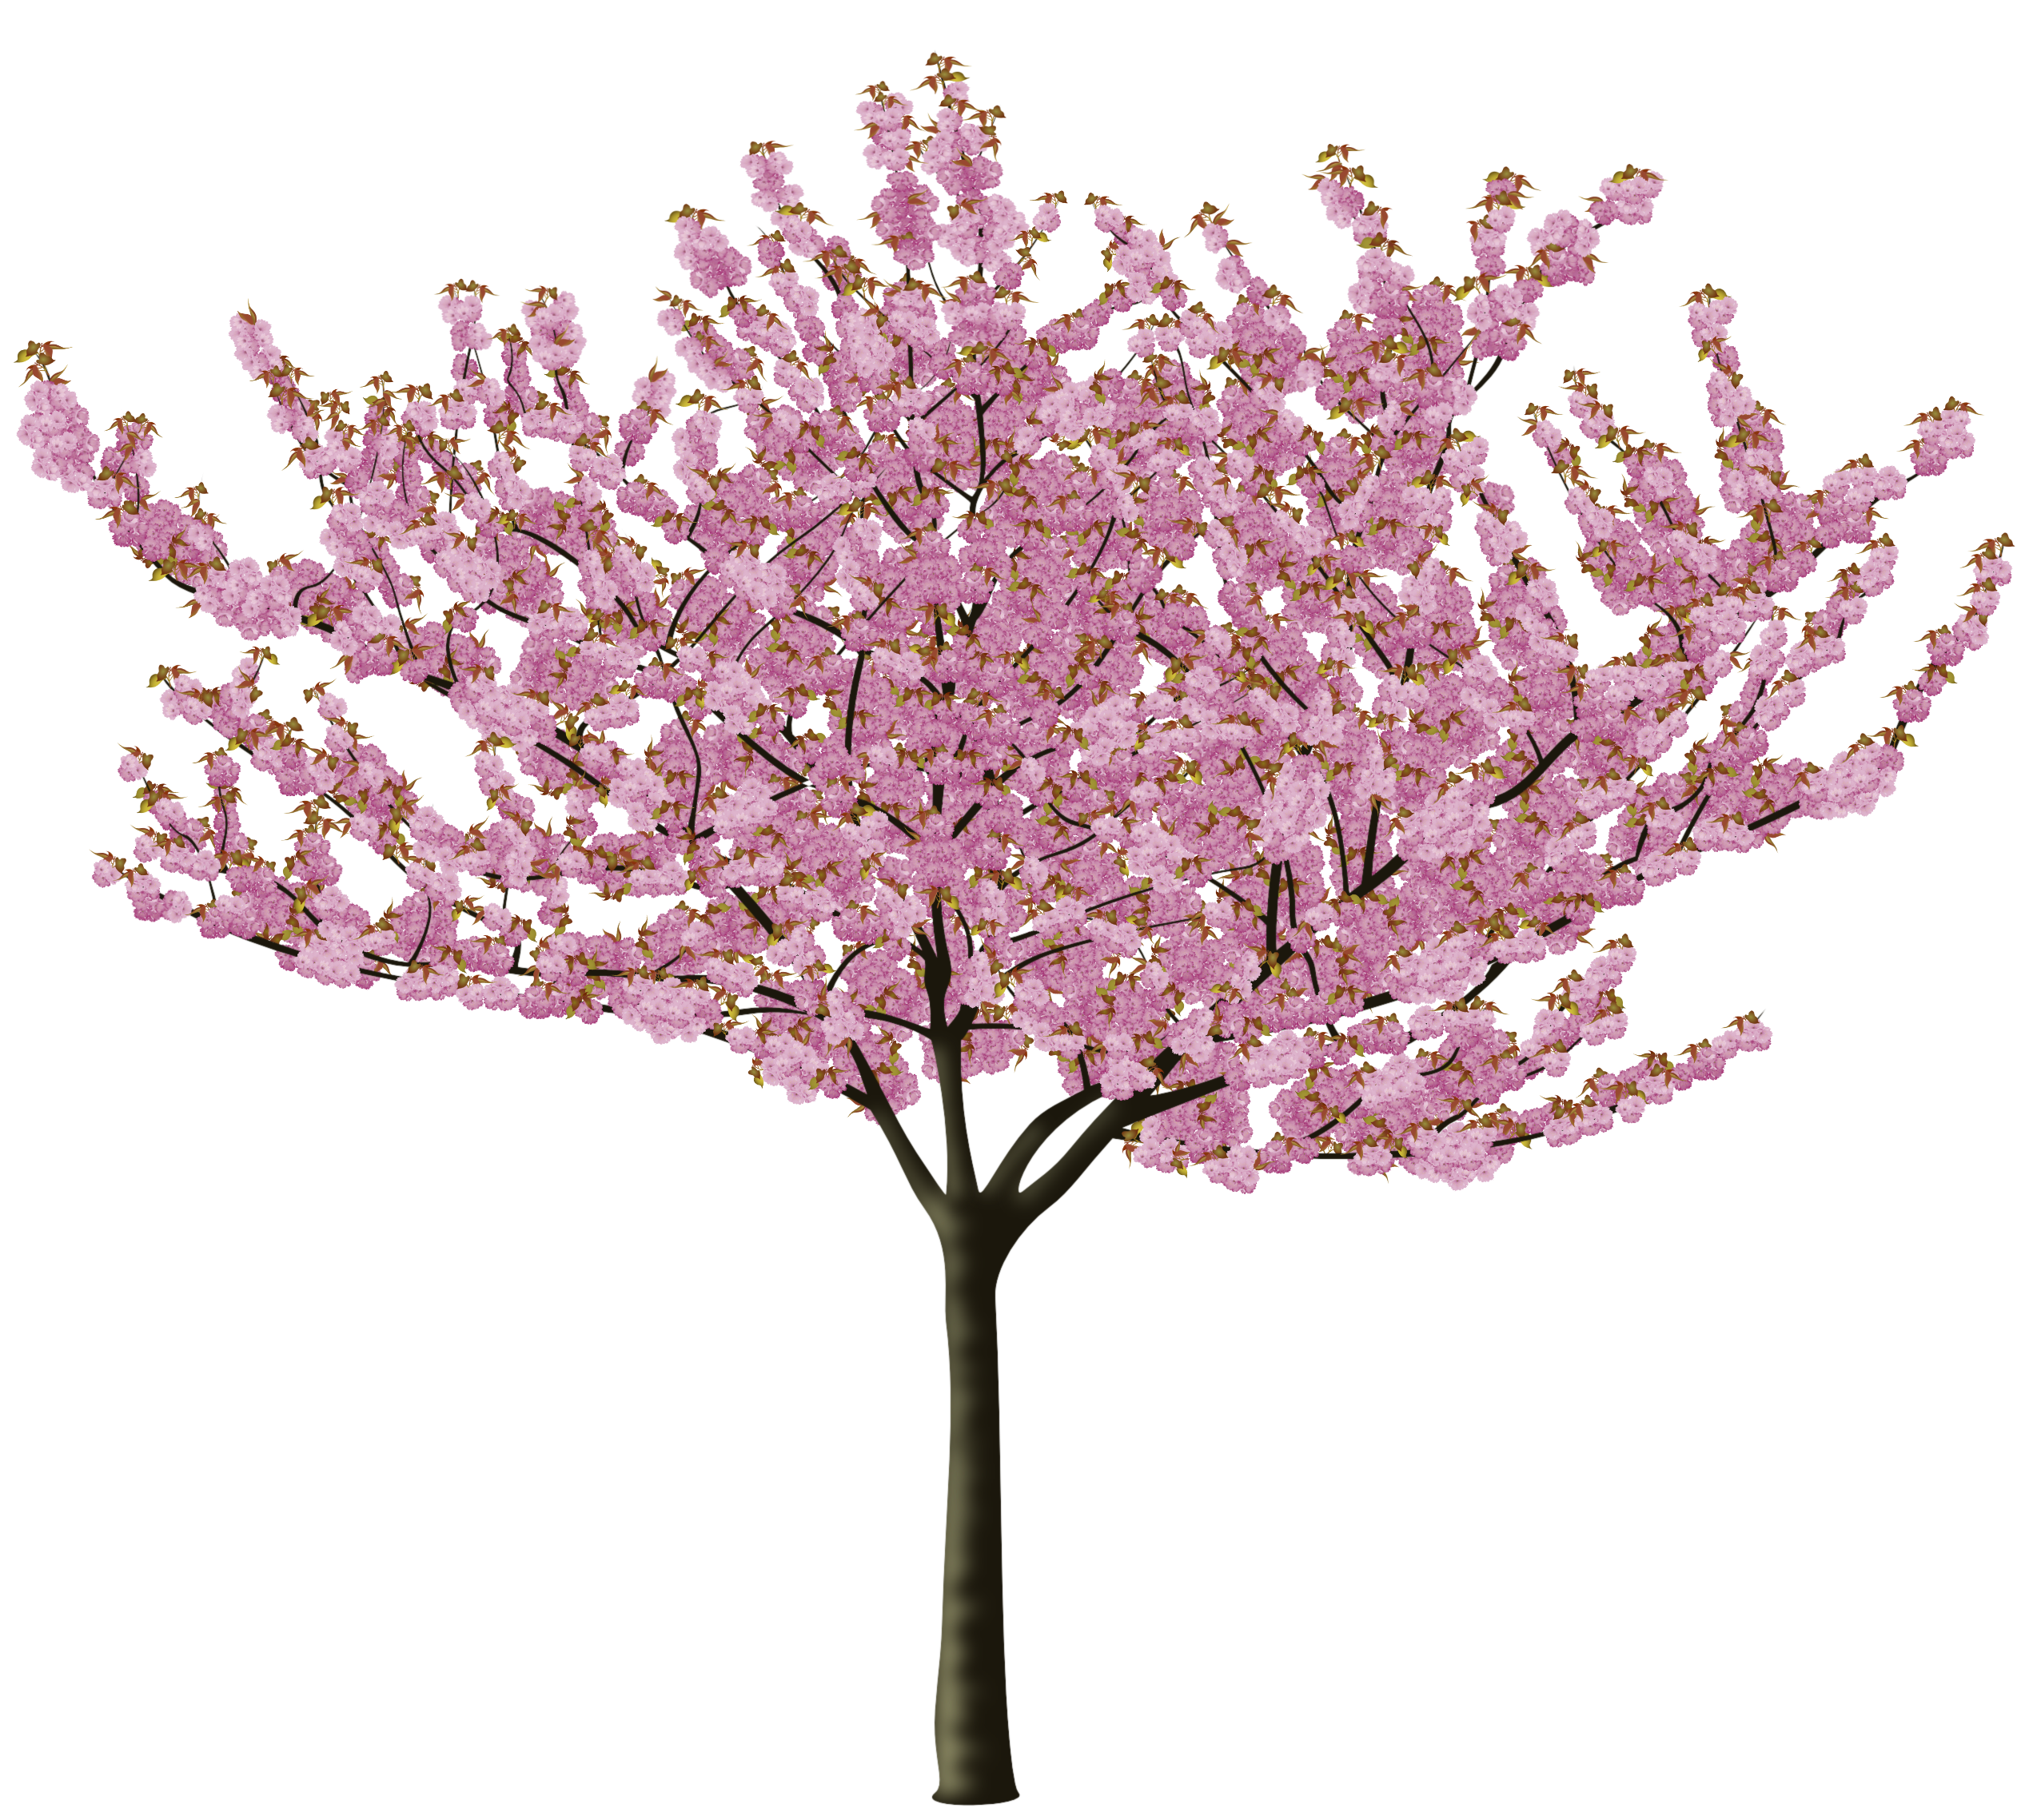 Png Format Images Of Cherry Blossom image #45488